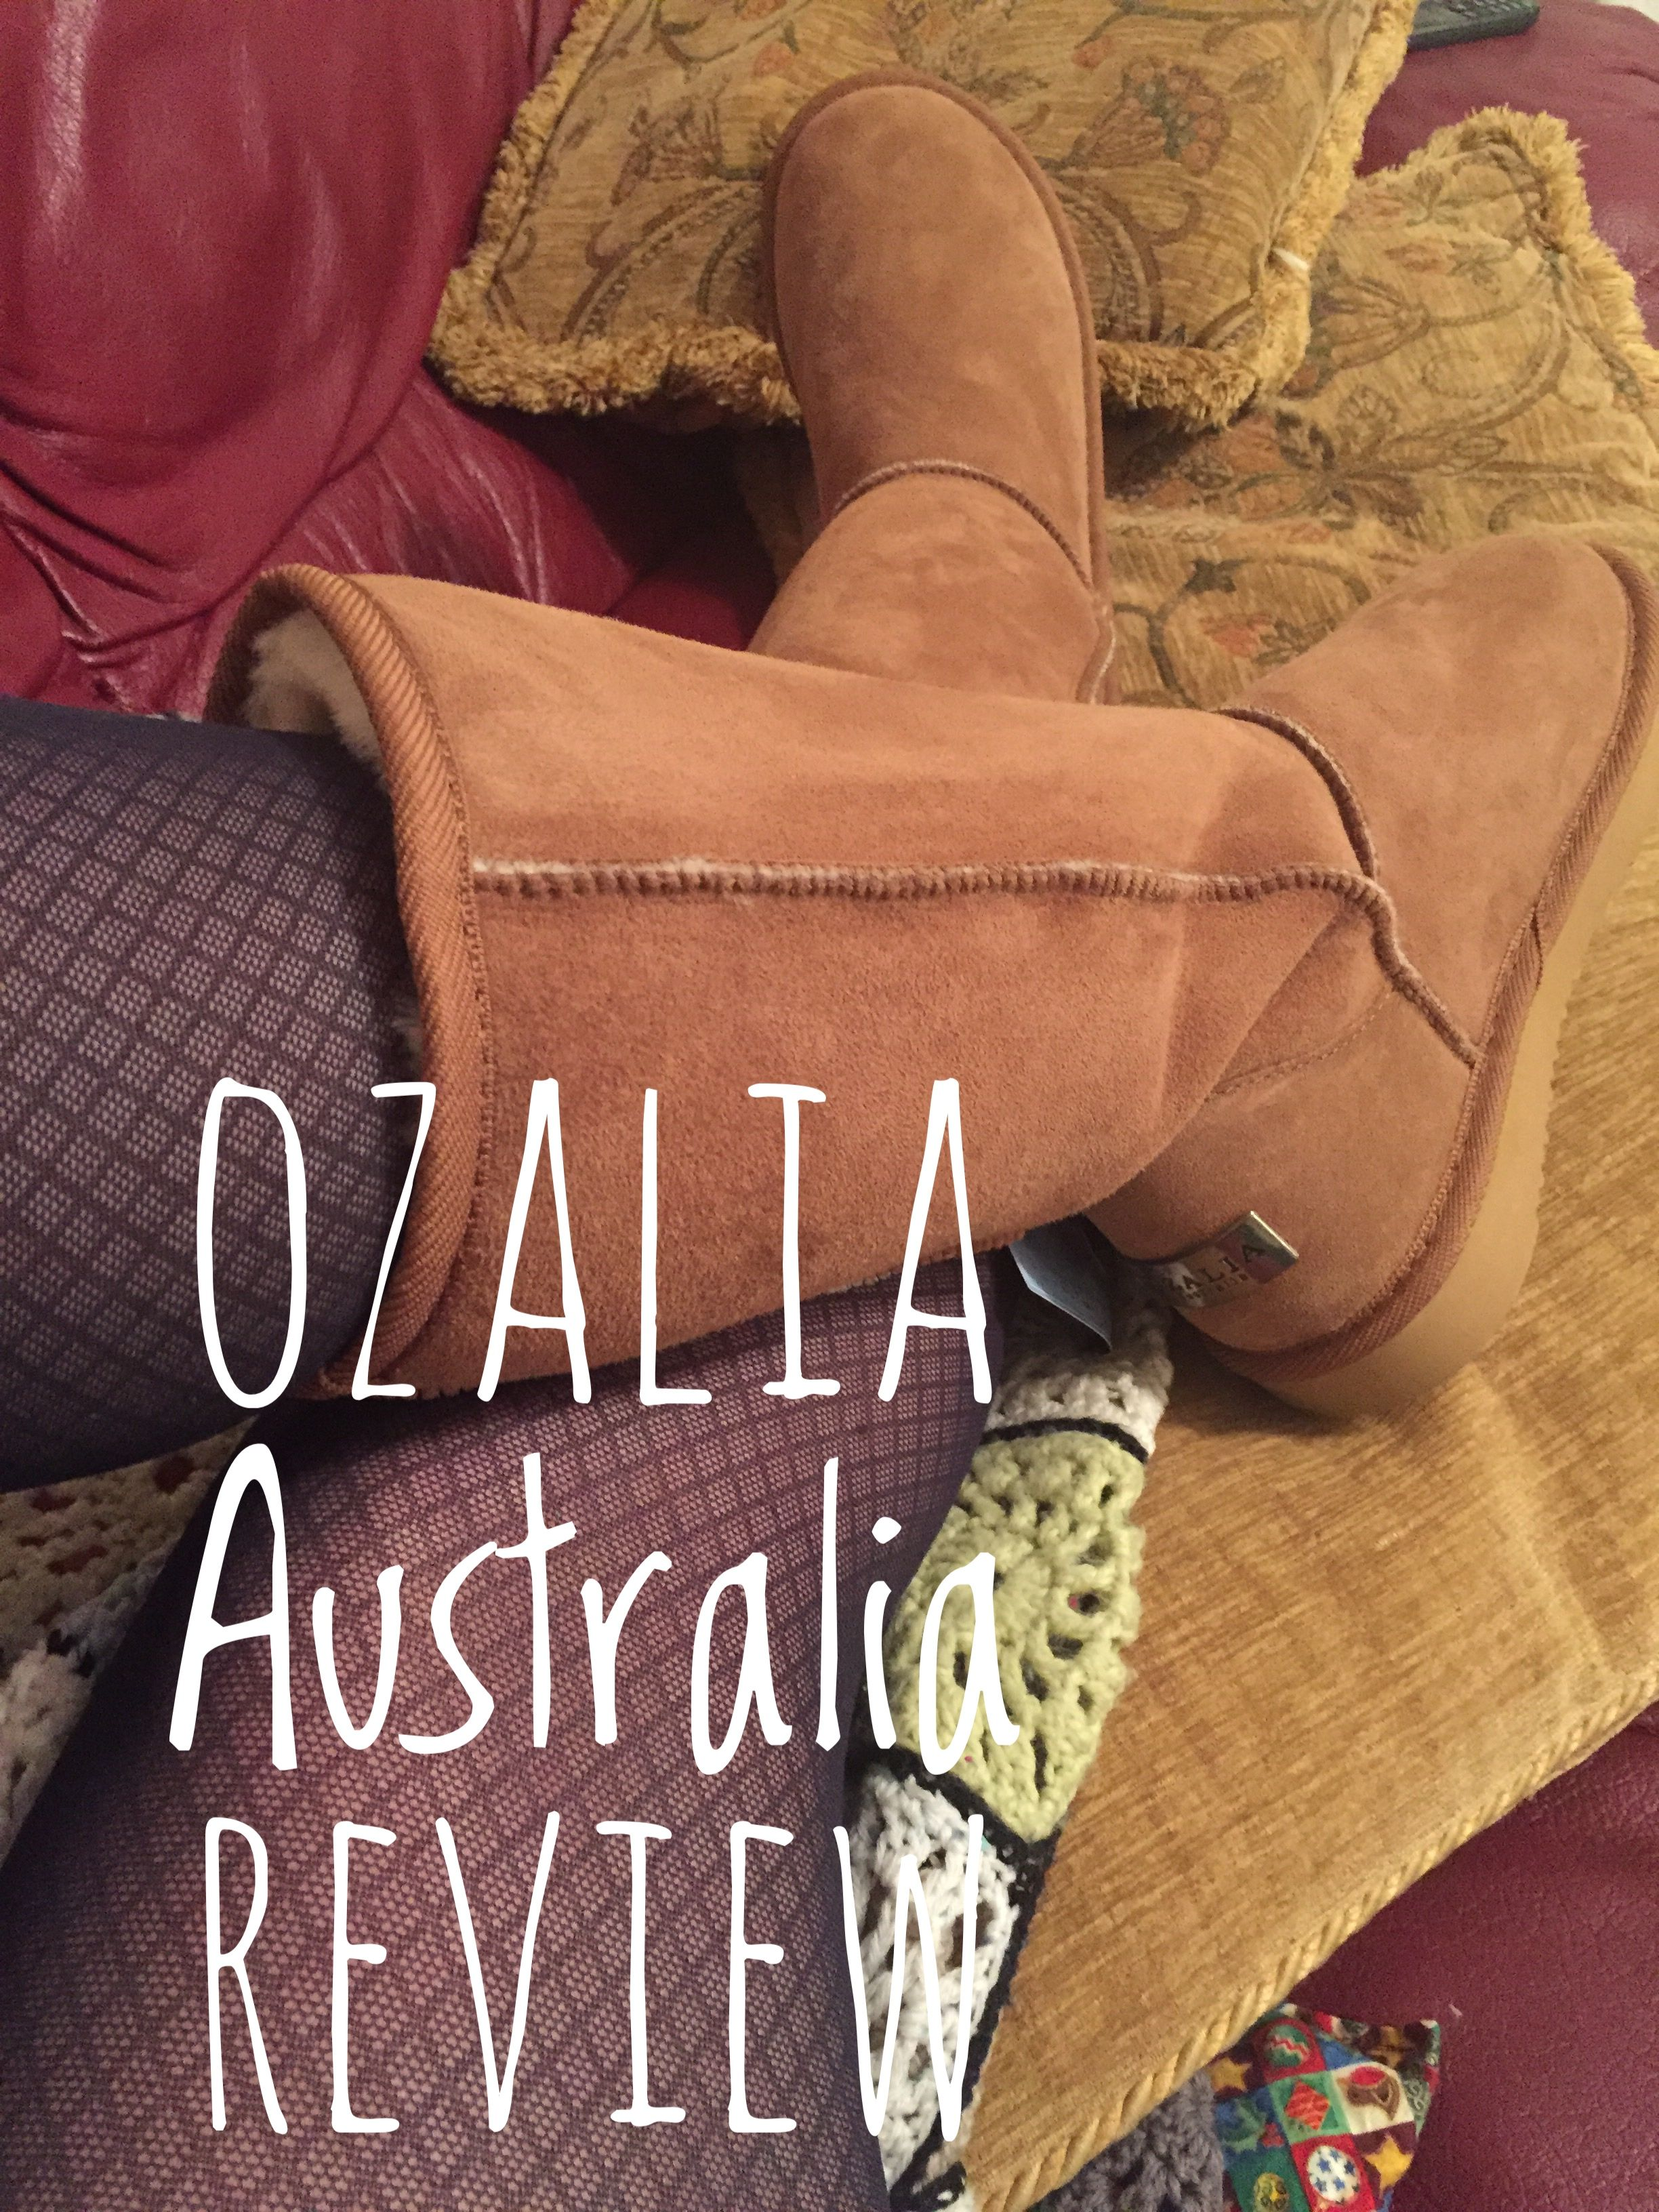 NEW POST: Part 2 - my review of Ozalia Australia boots. Join me as I put those boots to the test! http://bootsshoesandfashion.com/ozalia-australia-review/